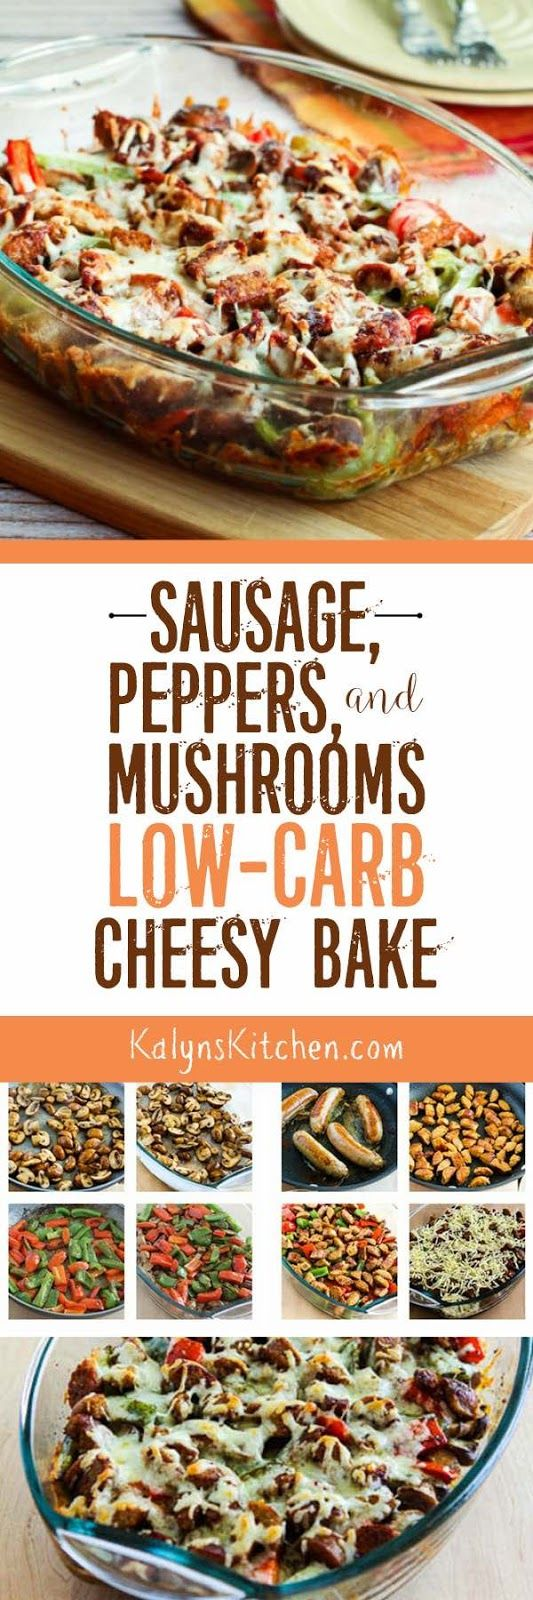 Sausage, Peppers, and Mushrooms Low-Carb Cheesy Ba…